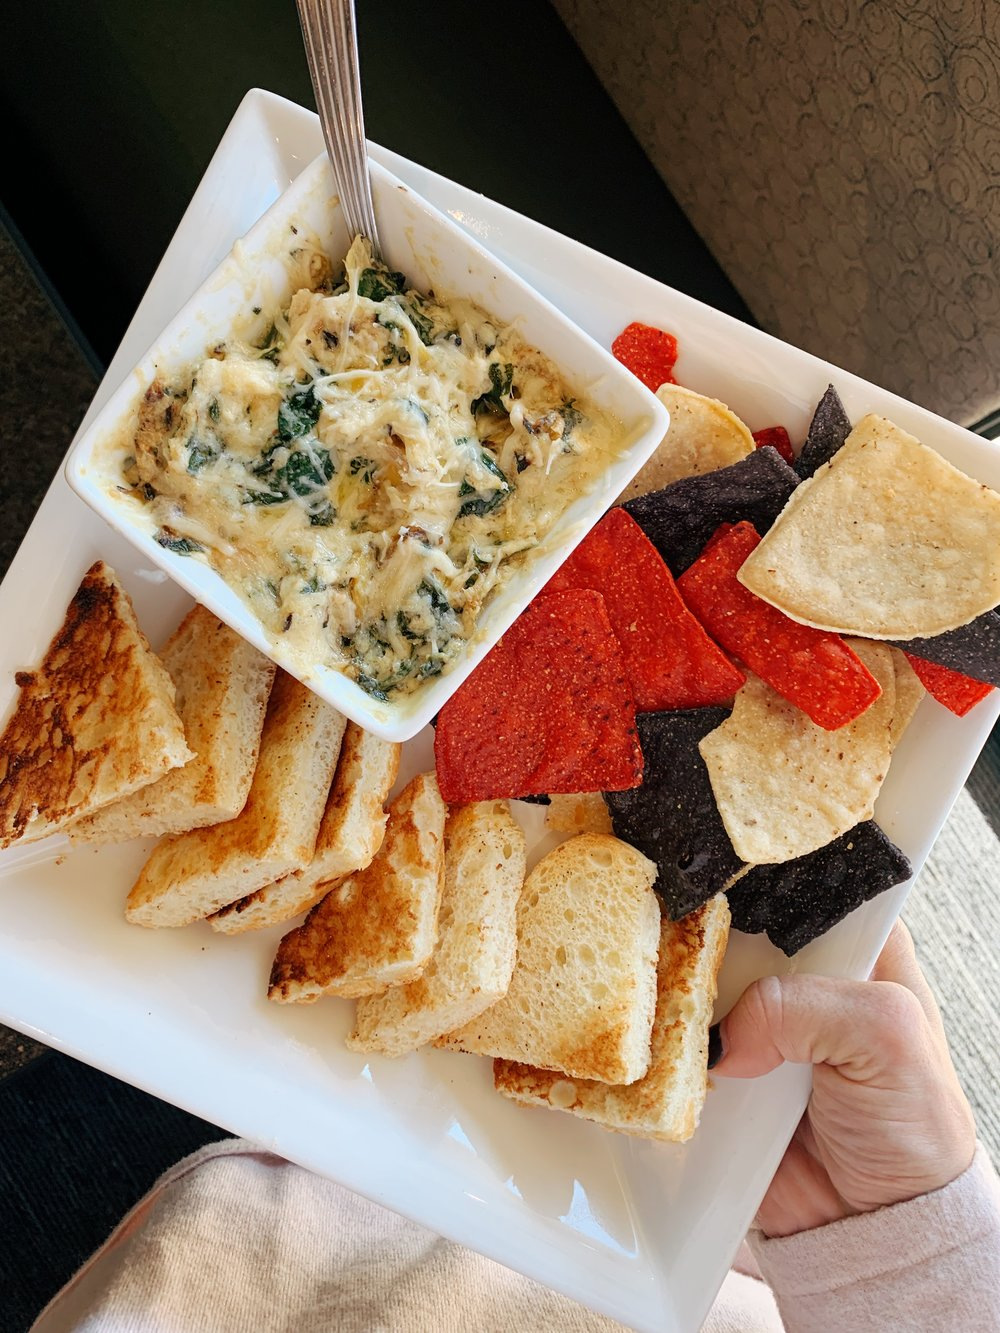 SPINACH AND ARTICHOKE DIP  Our homemade dip made with marinated artichoke hearts and baby spinach. Served with toasted ciabatta bread and tortilla chips.